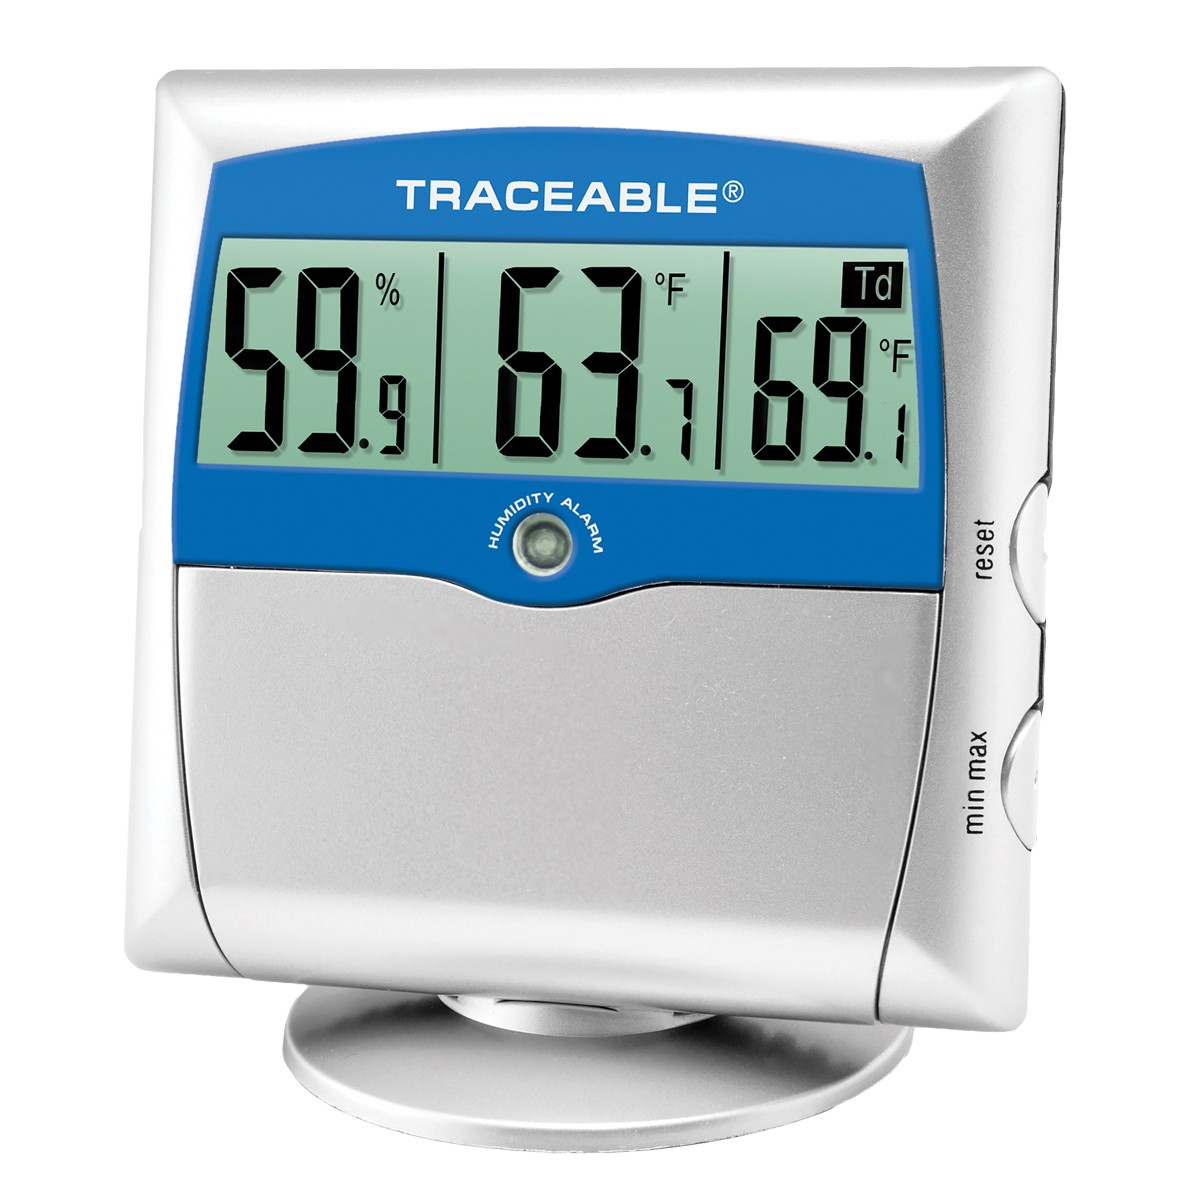 4800 Traceable® Digital Humidity/Temperature/Dew Point Meter